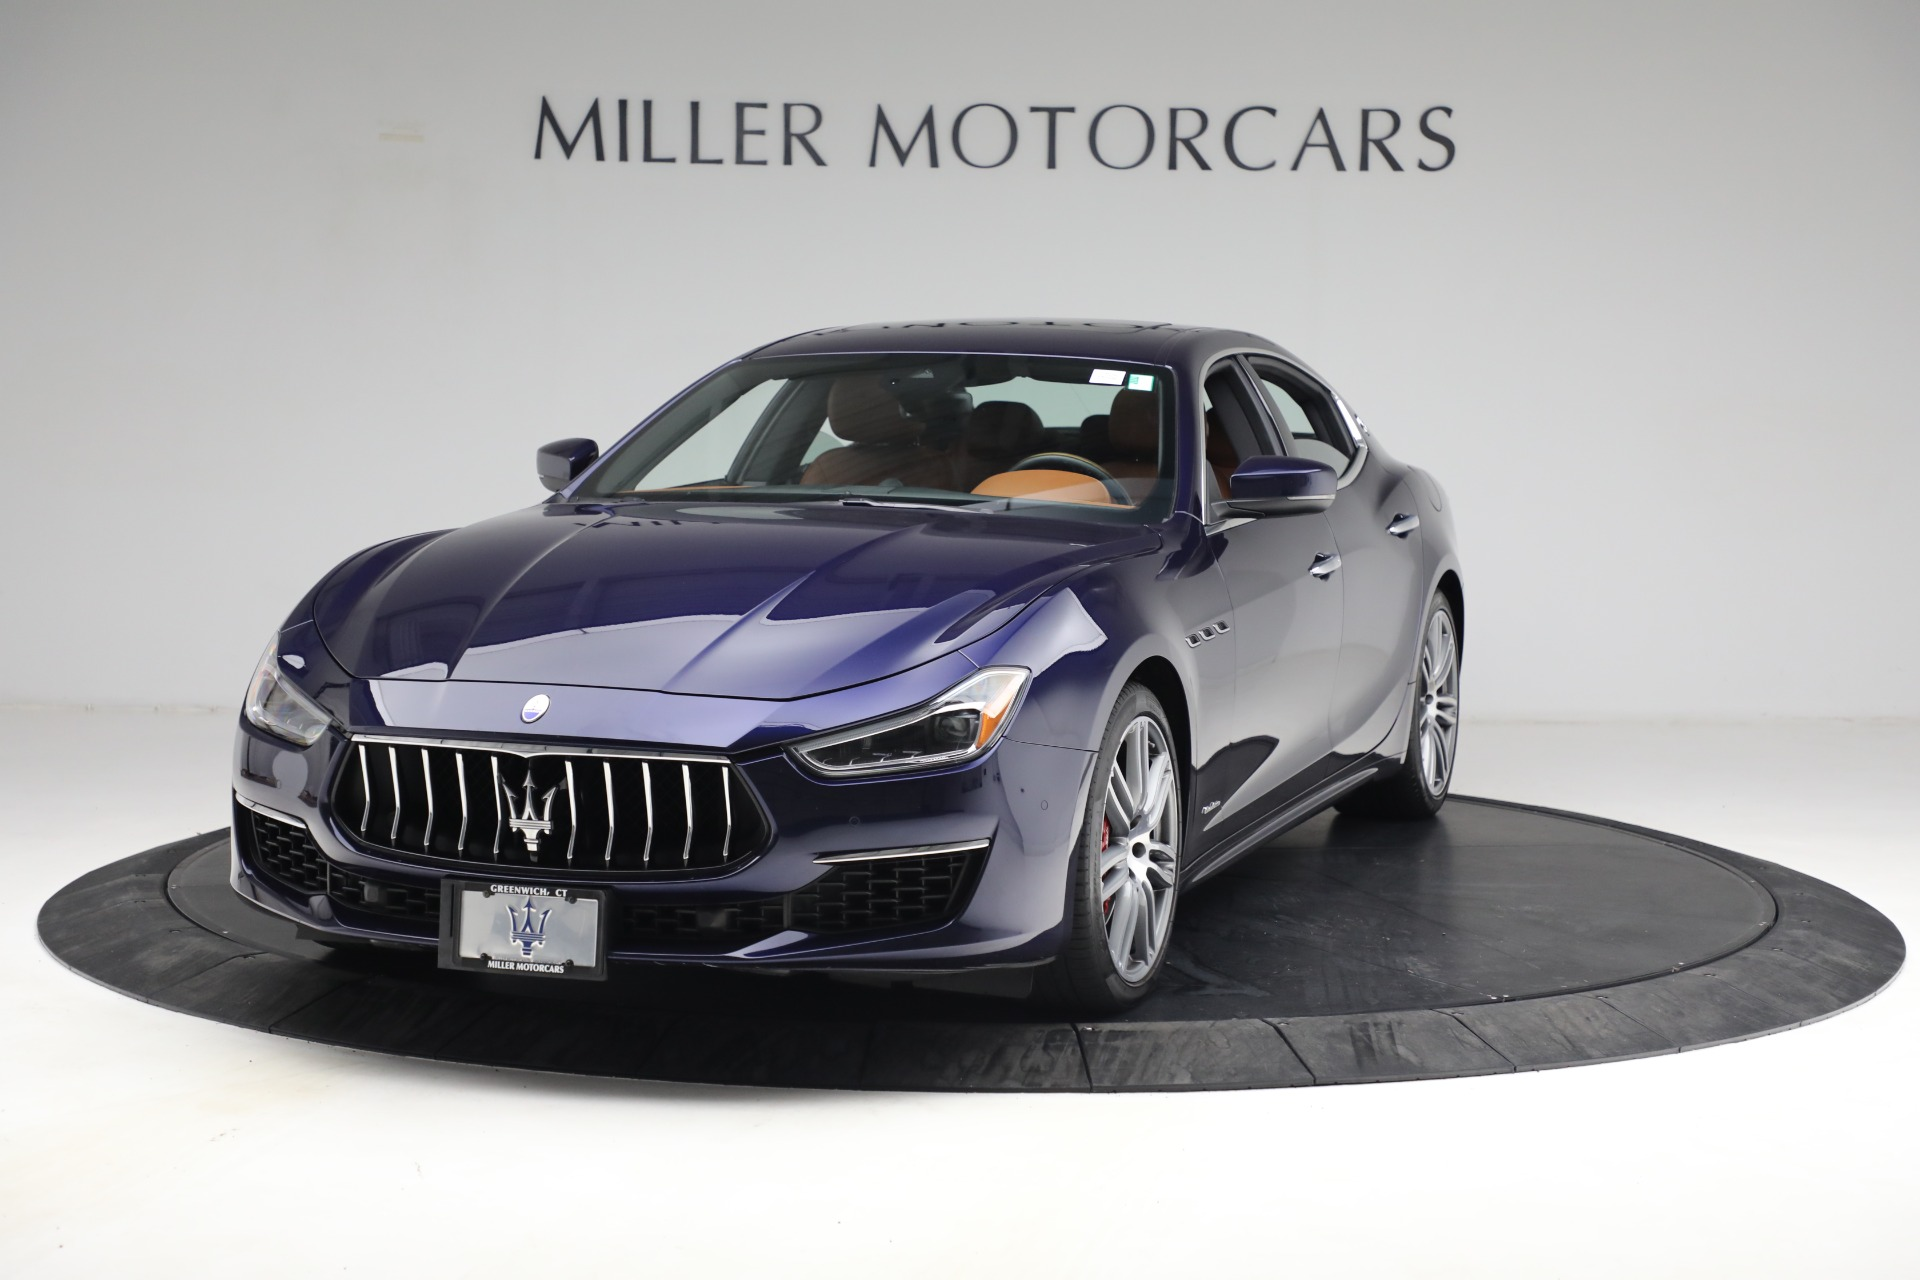 Used 2018 Maserati Ghibli S Q4 GranLusso for sale $56,900 at Bentley Greenwich in Greenwich CT 06830 1